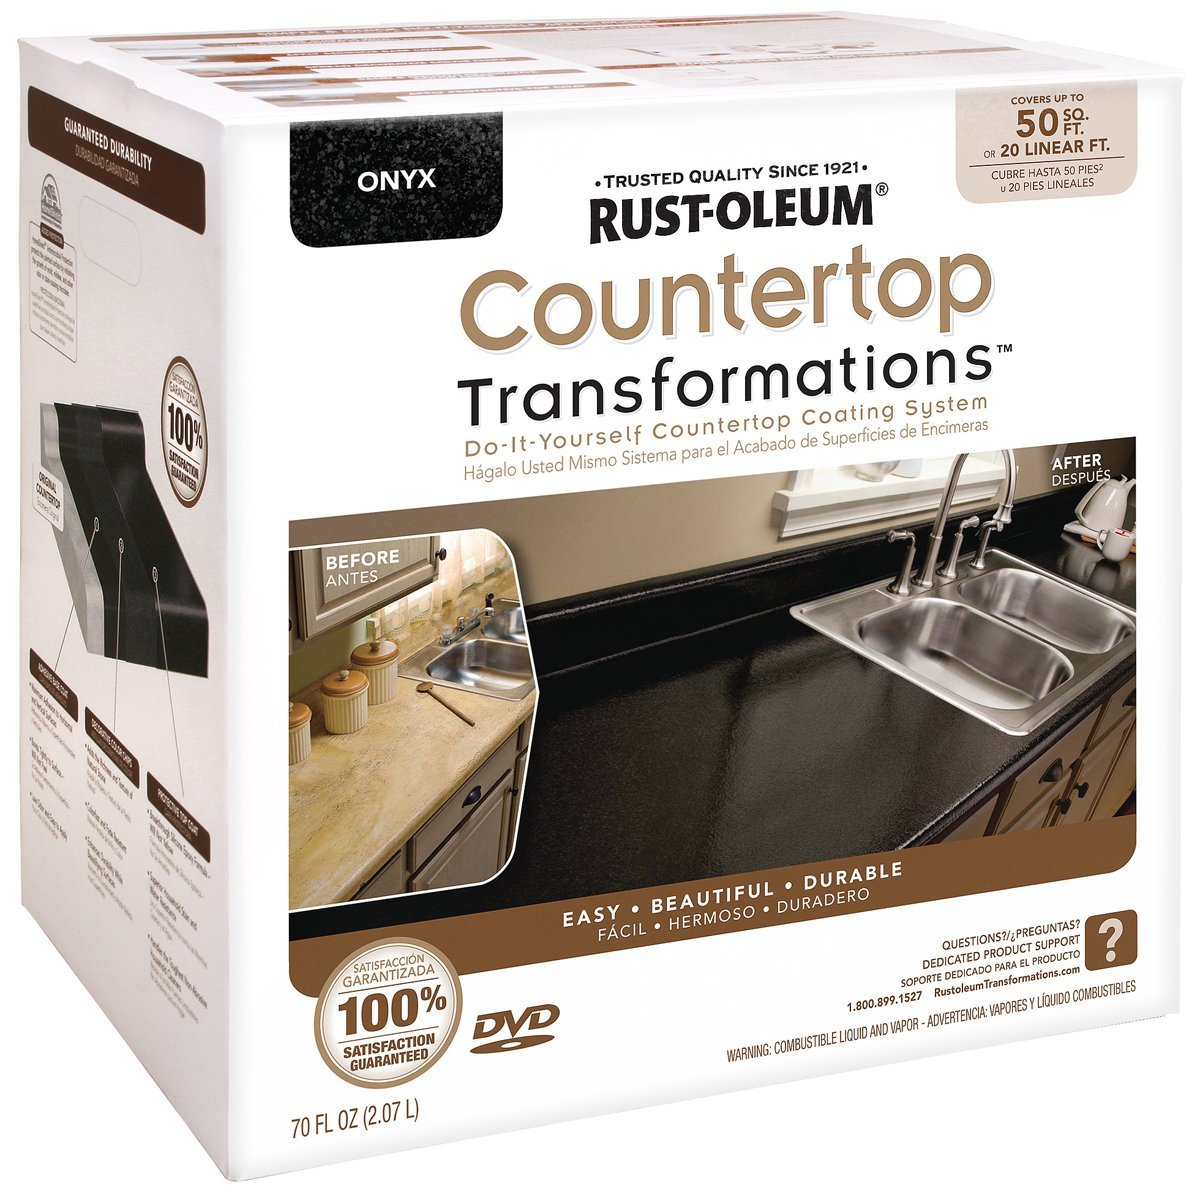 Rustoleum 258284 Onyx Countertop Transformations Kit Covers 500 Sq Ft  #906E3B